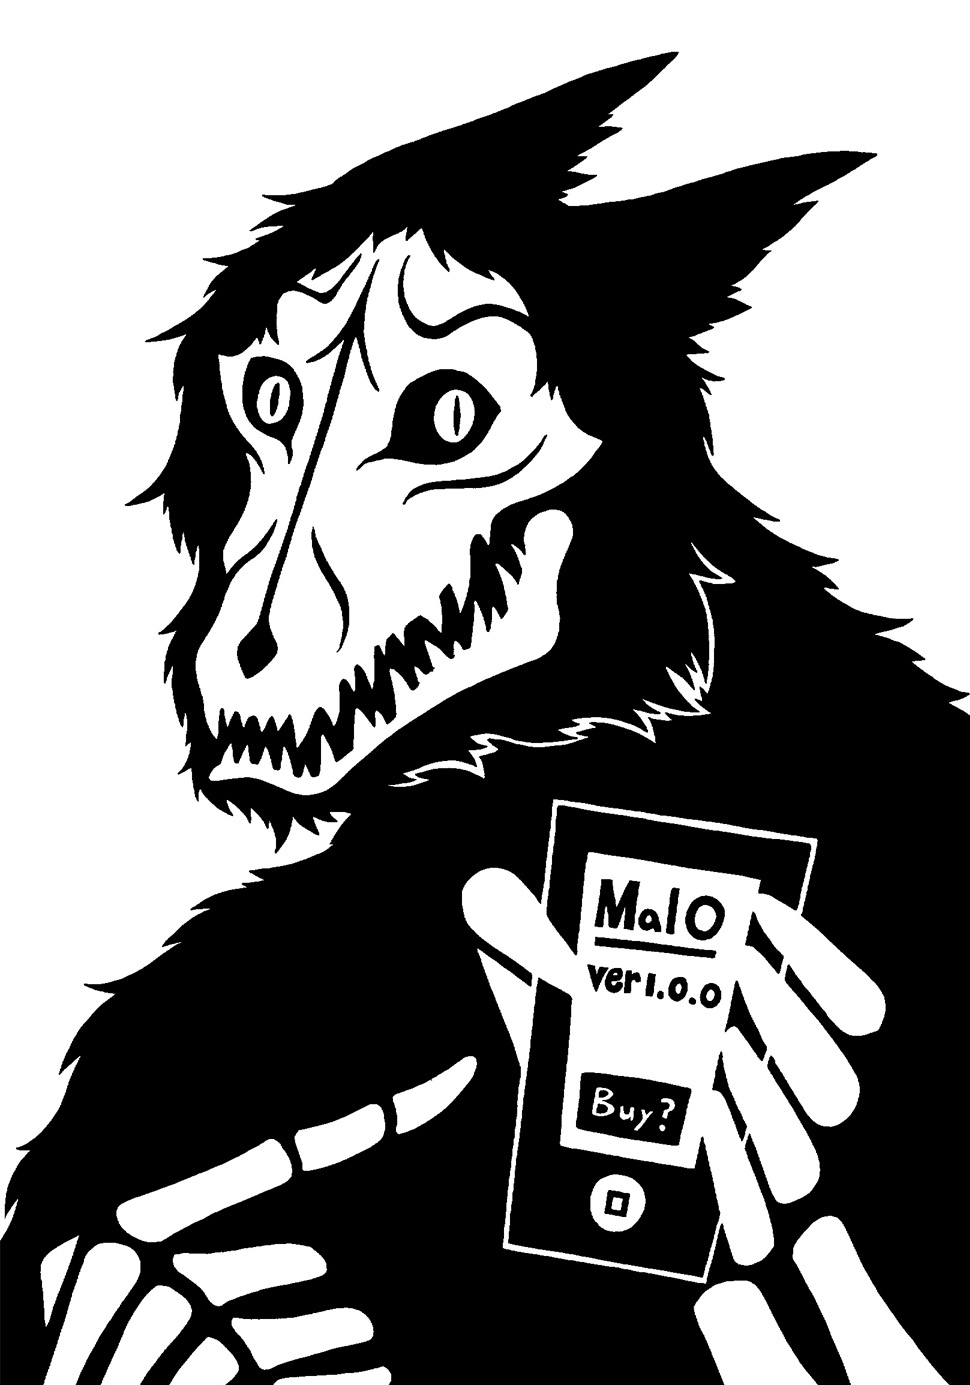 SCP-1471 - MalO 1.0.0版